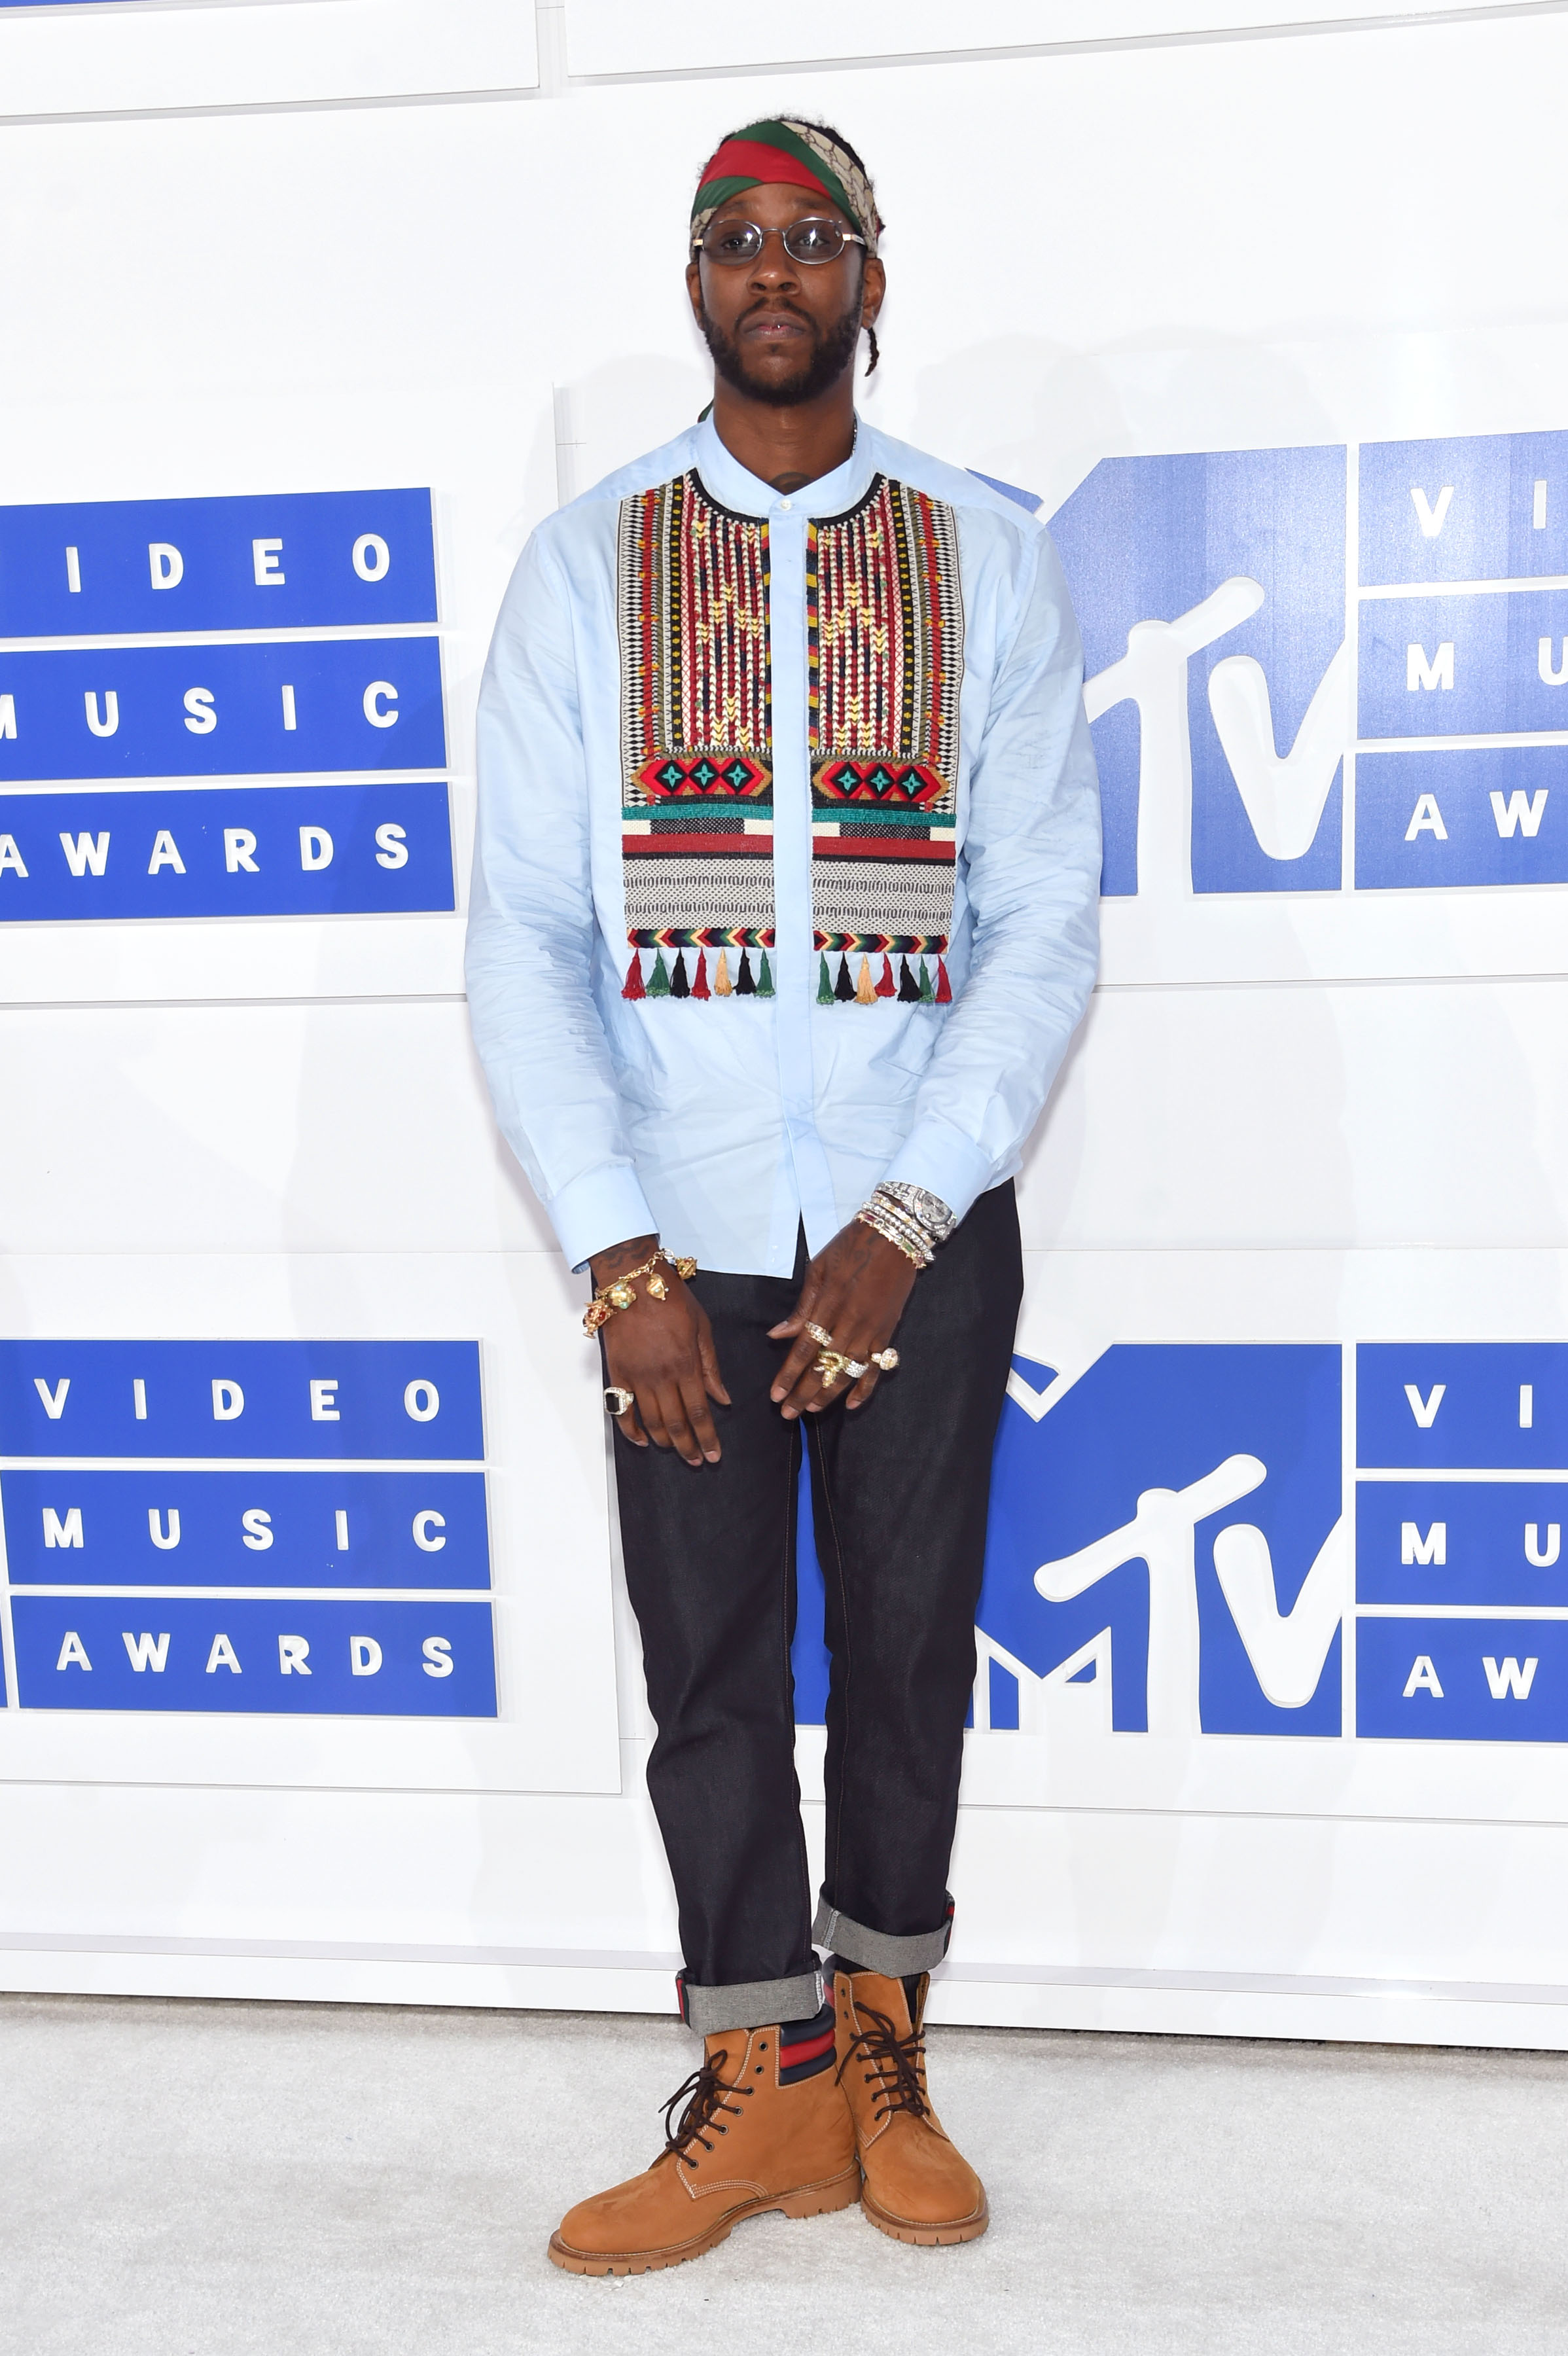 2 Chainz attends the 2016 MTV Video Music Awards at Madison Square Garden on Aug. 28, 2016 in New York City.